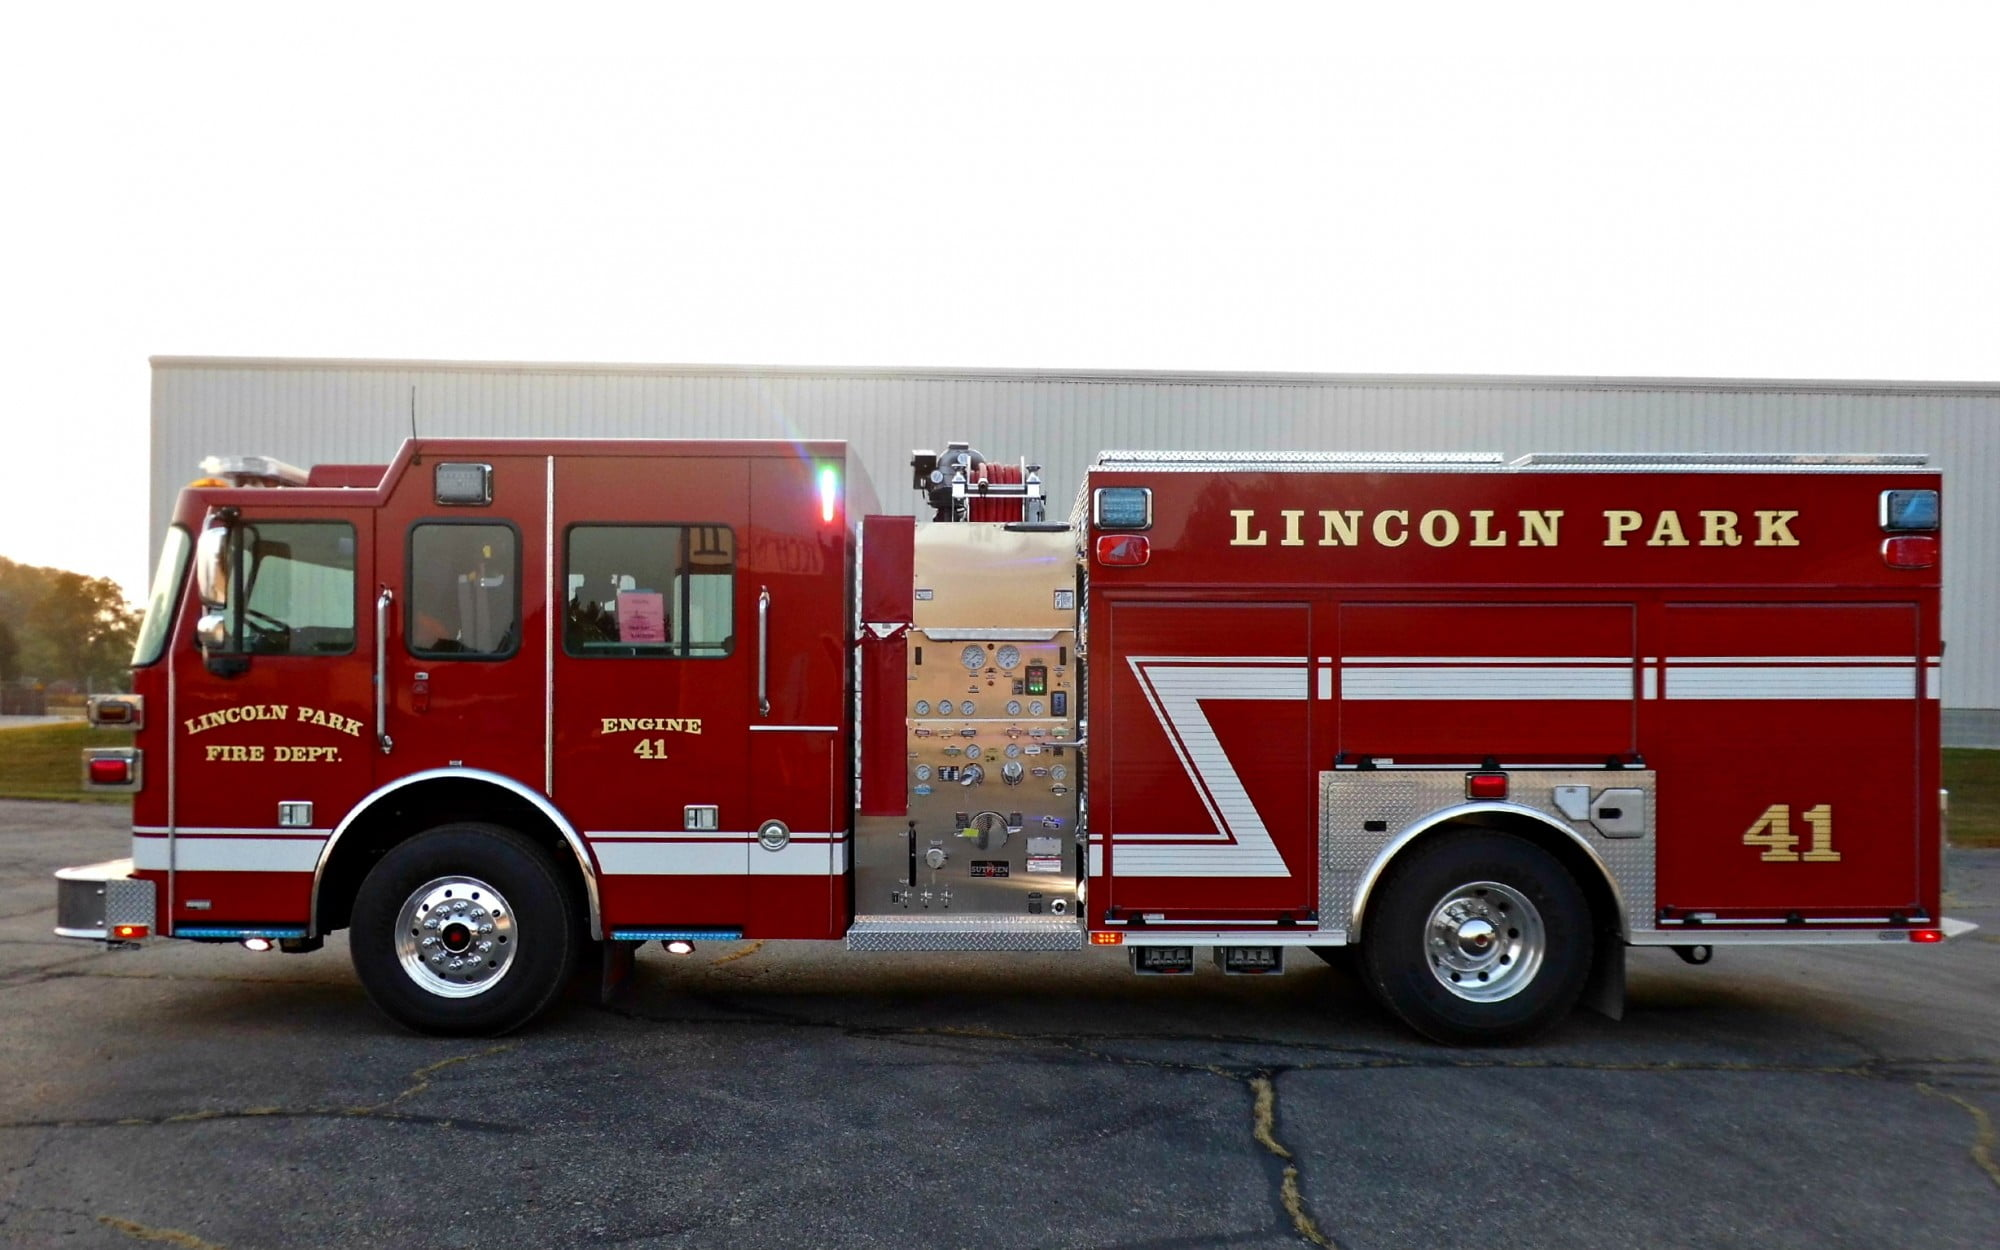 Lincoln Park Fire Department